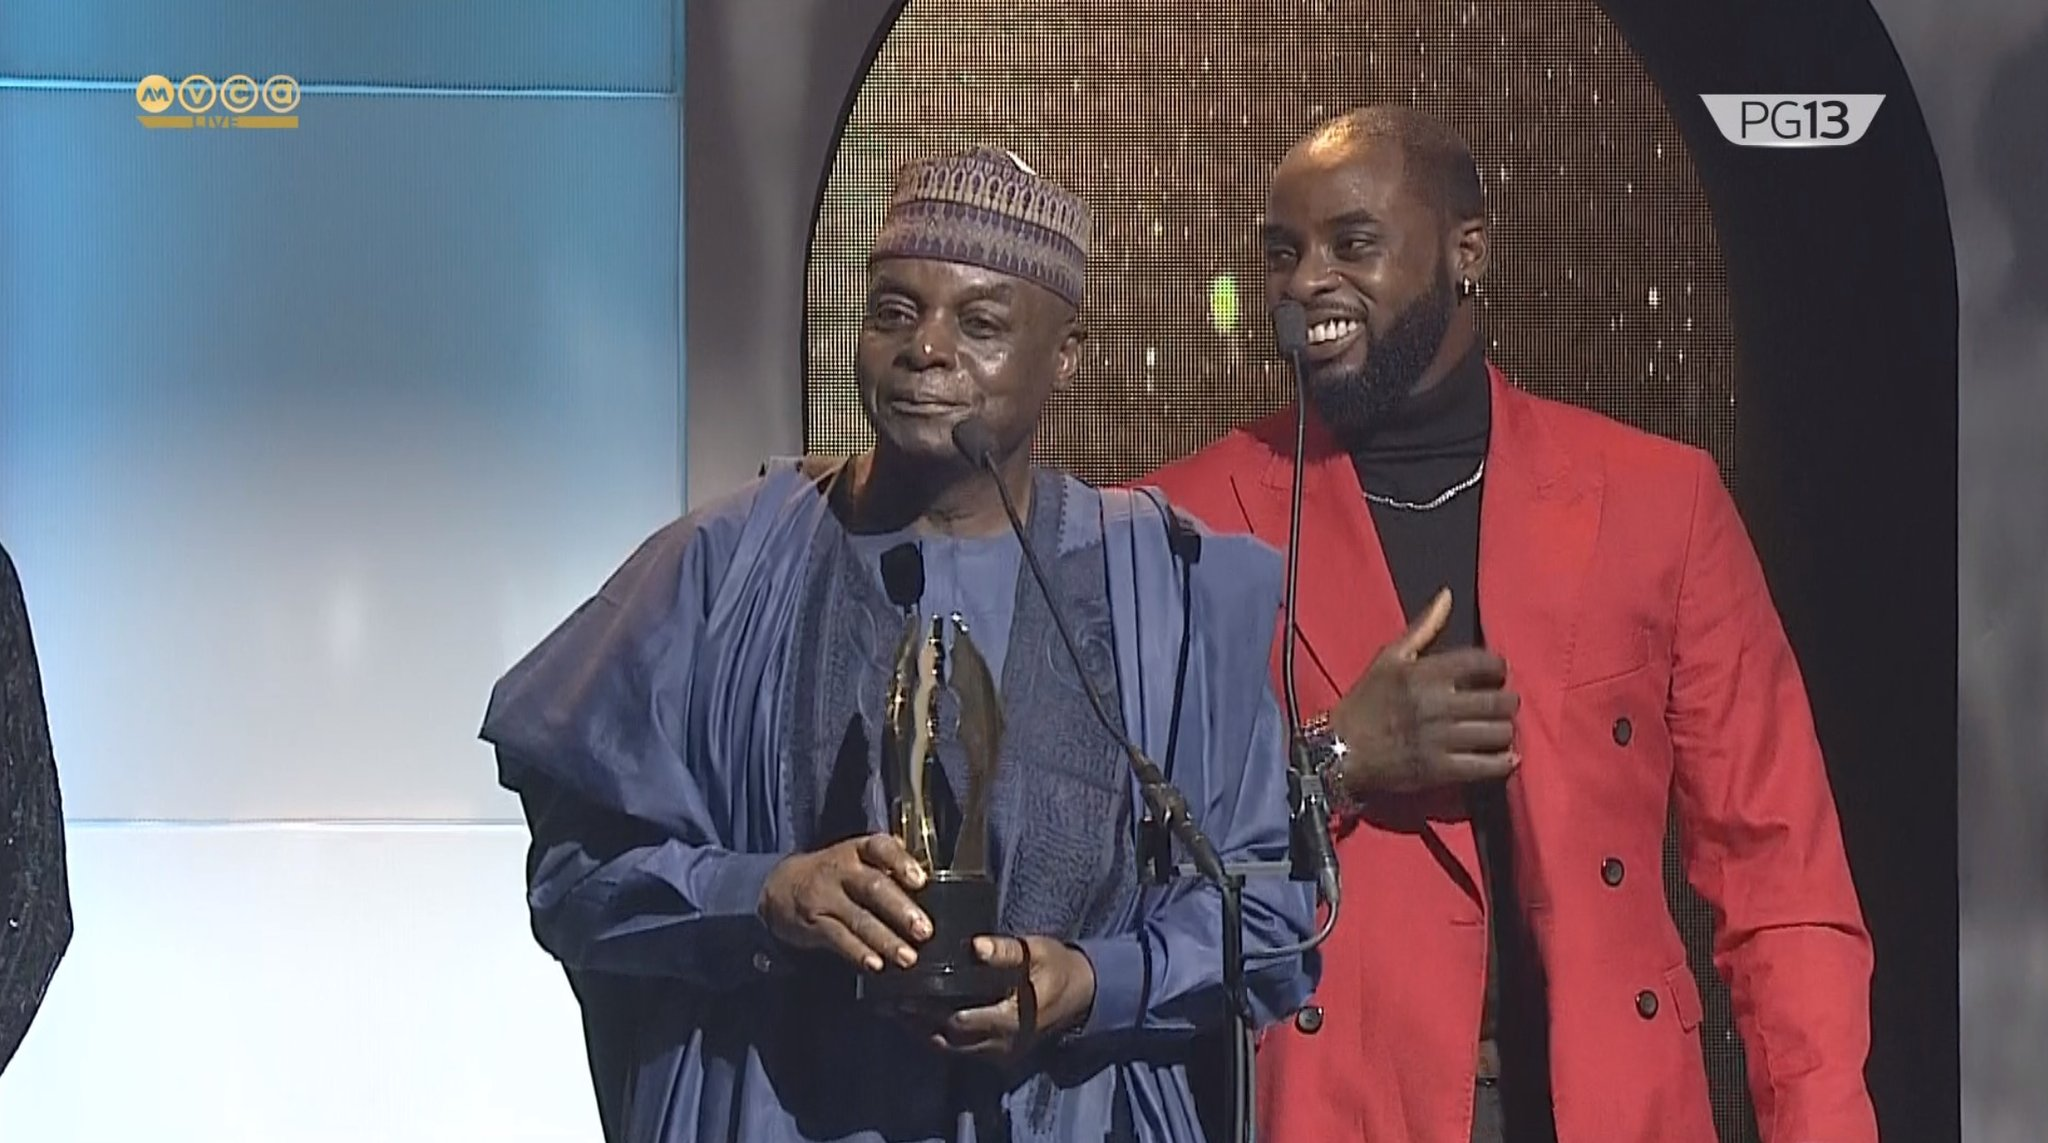 Peter And Tosin Igho: Veteran Broadcaster And Son Make History At AMVCA